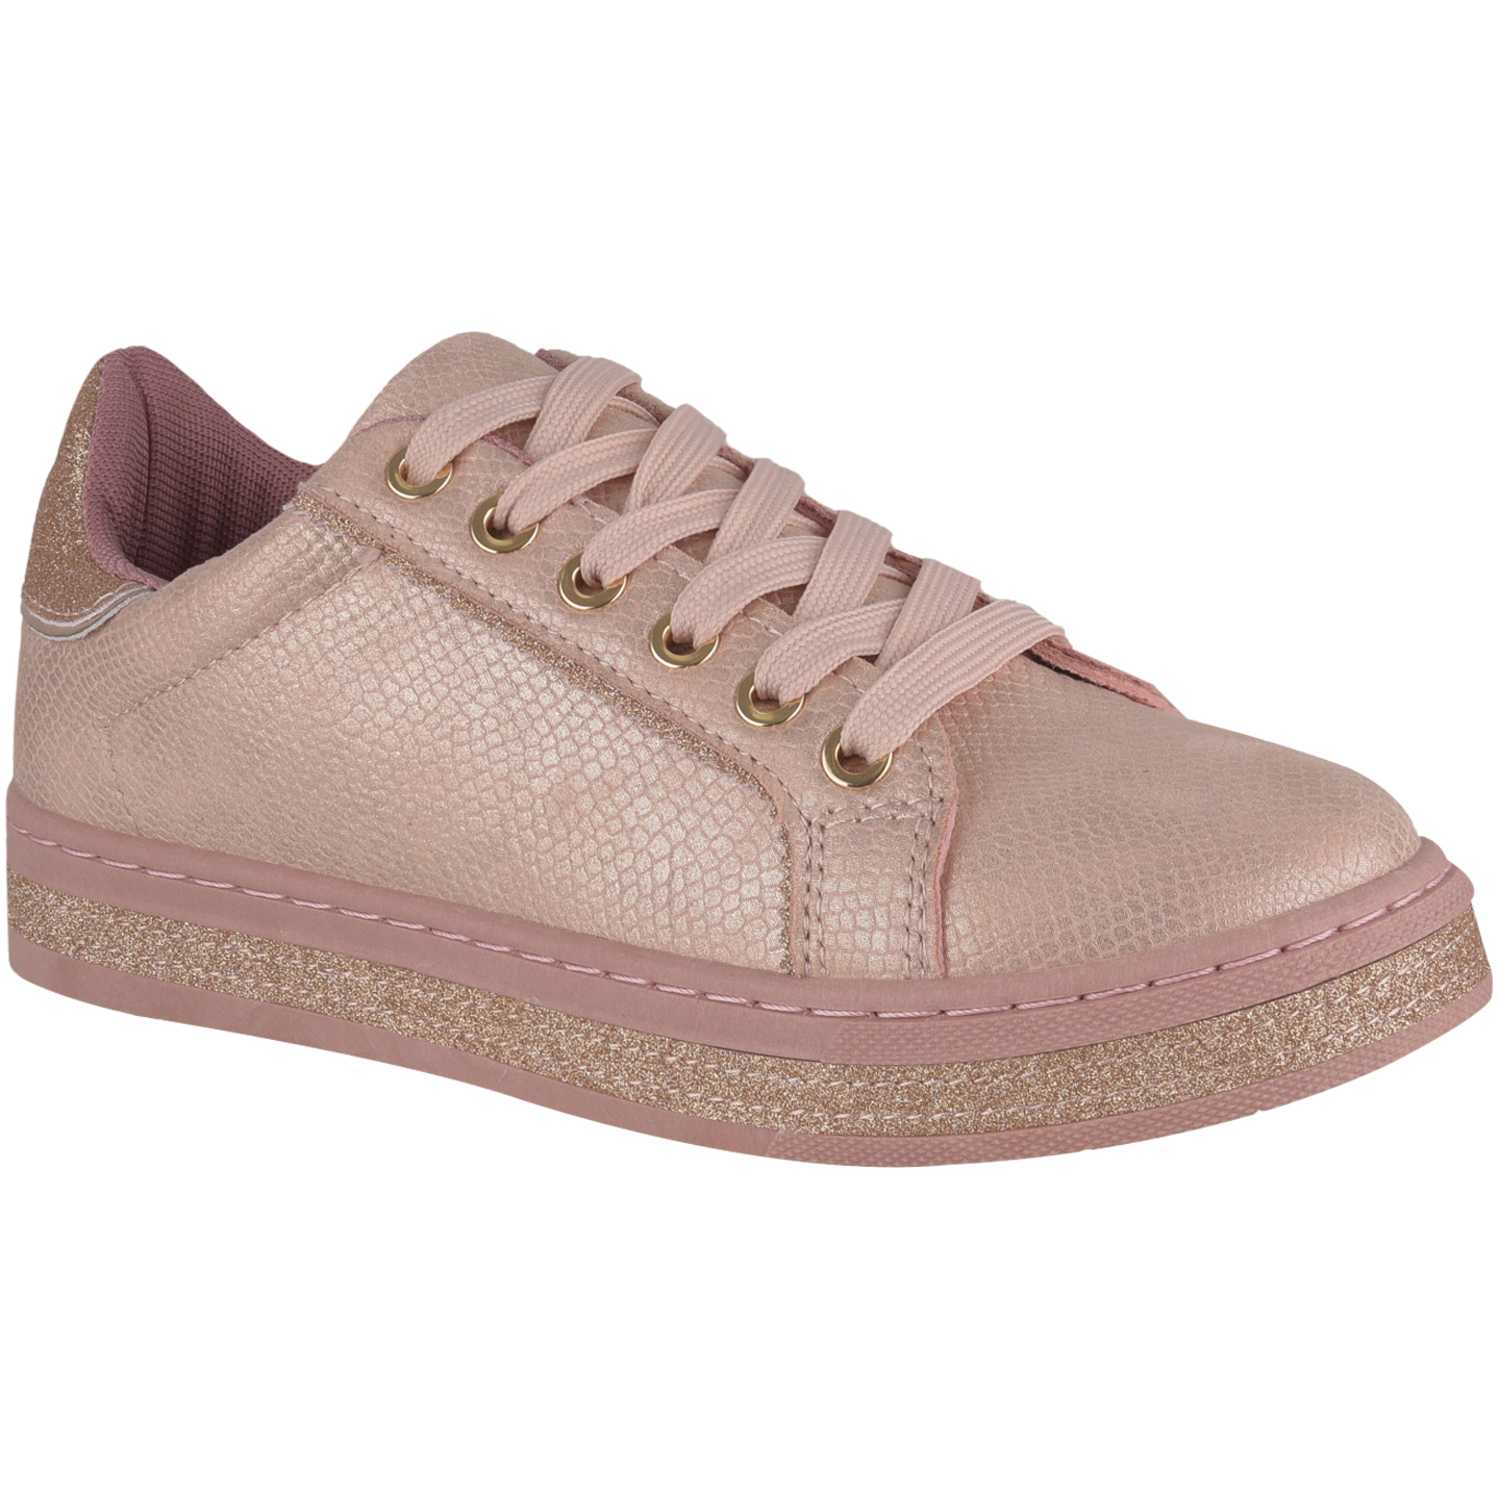 Just4u zc 805 Rosado Zapatillas Fashion